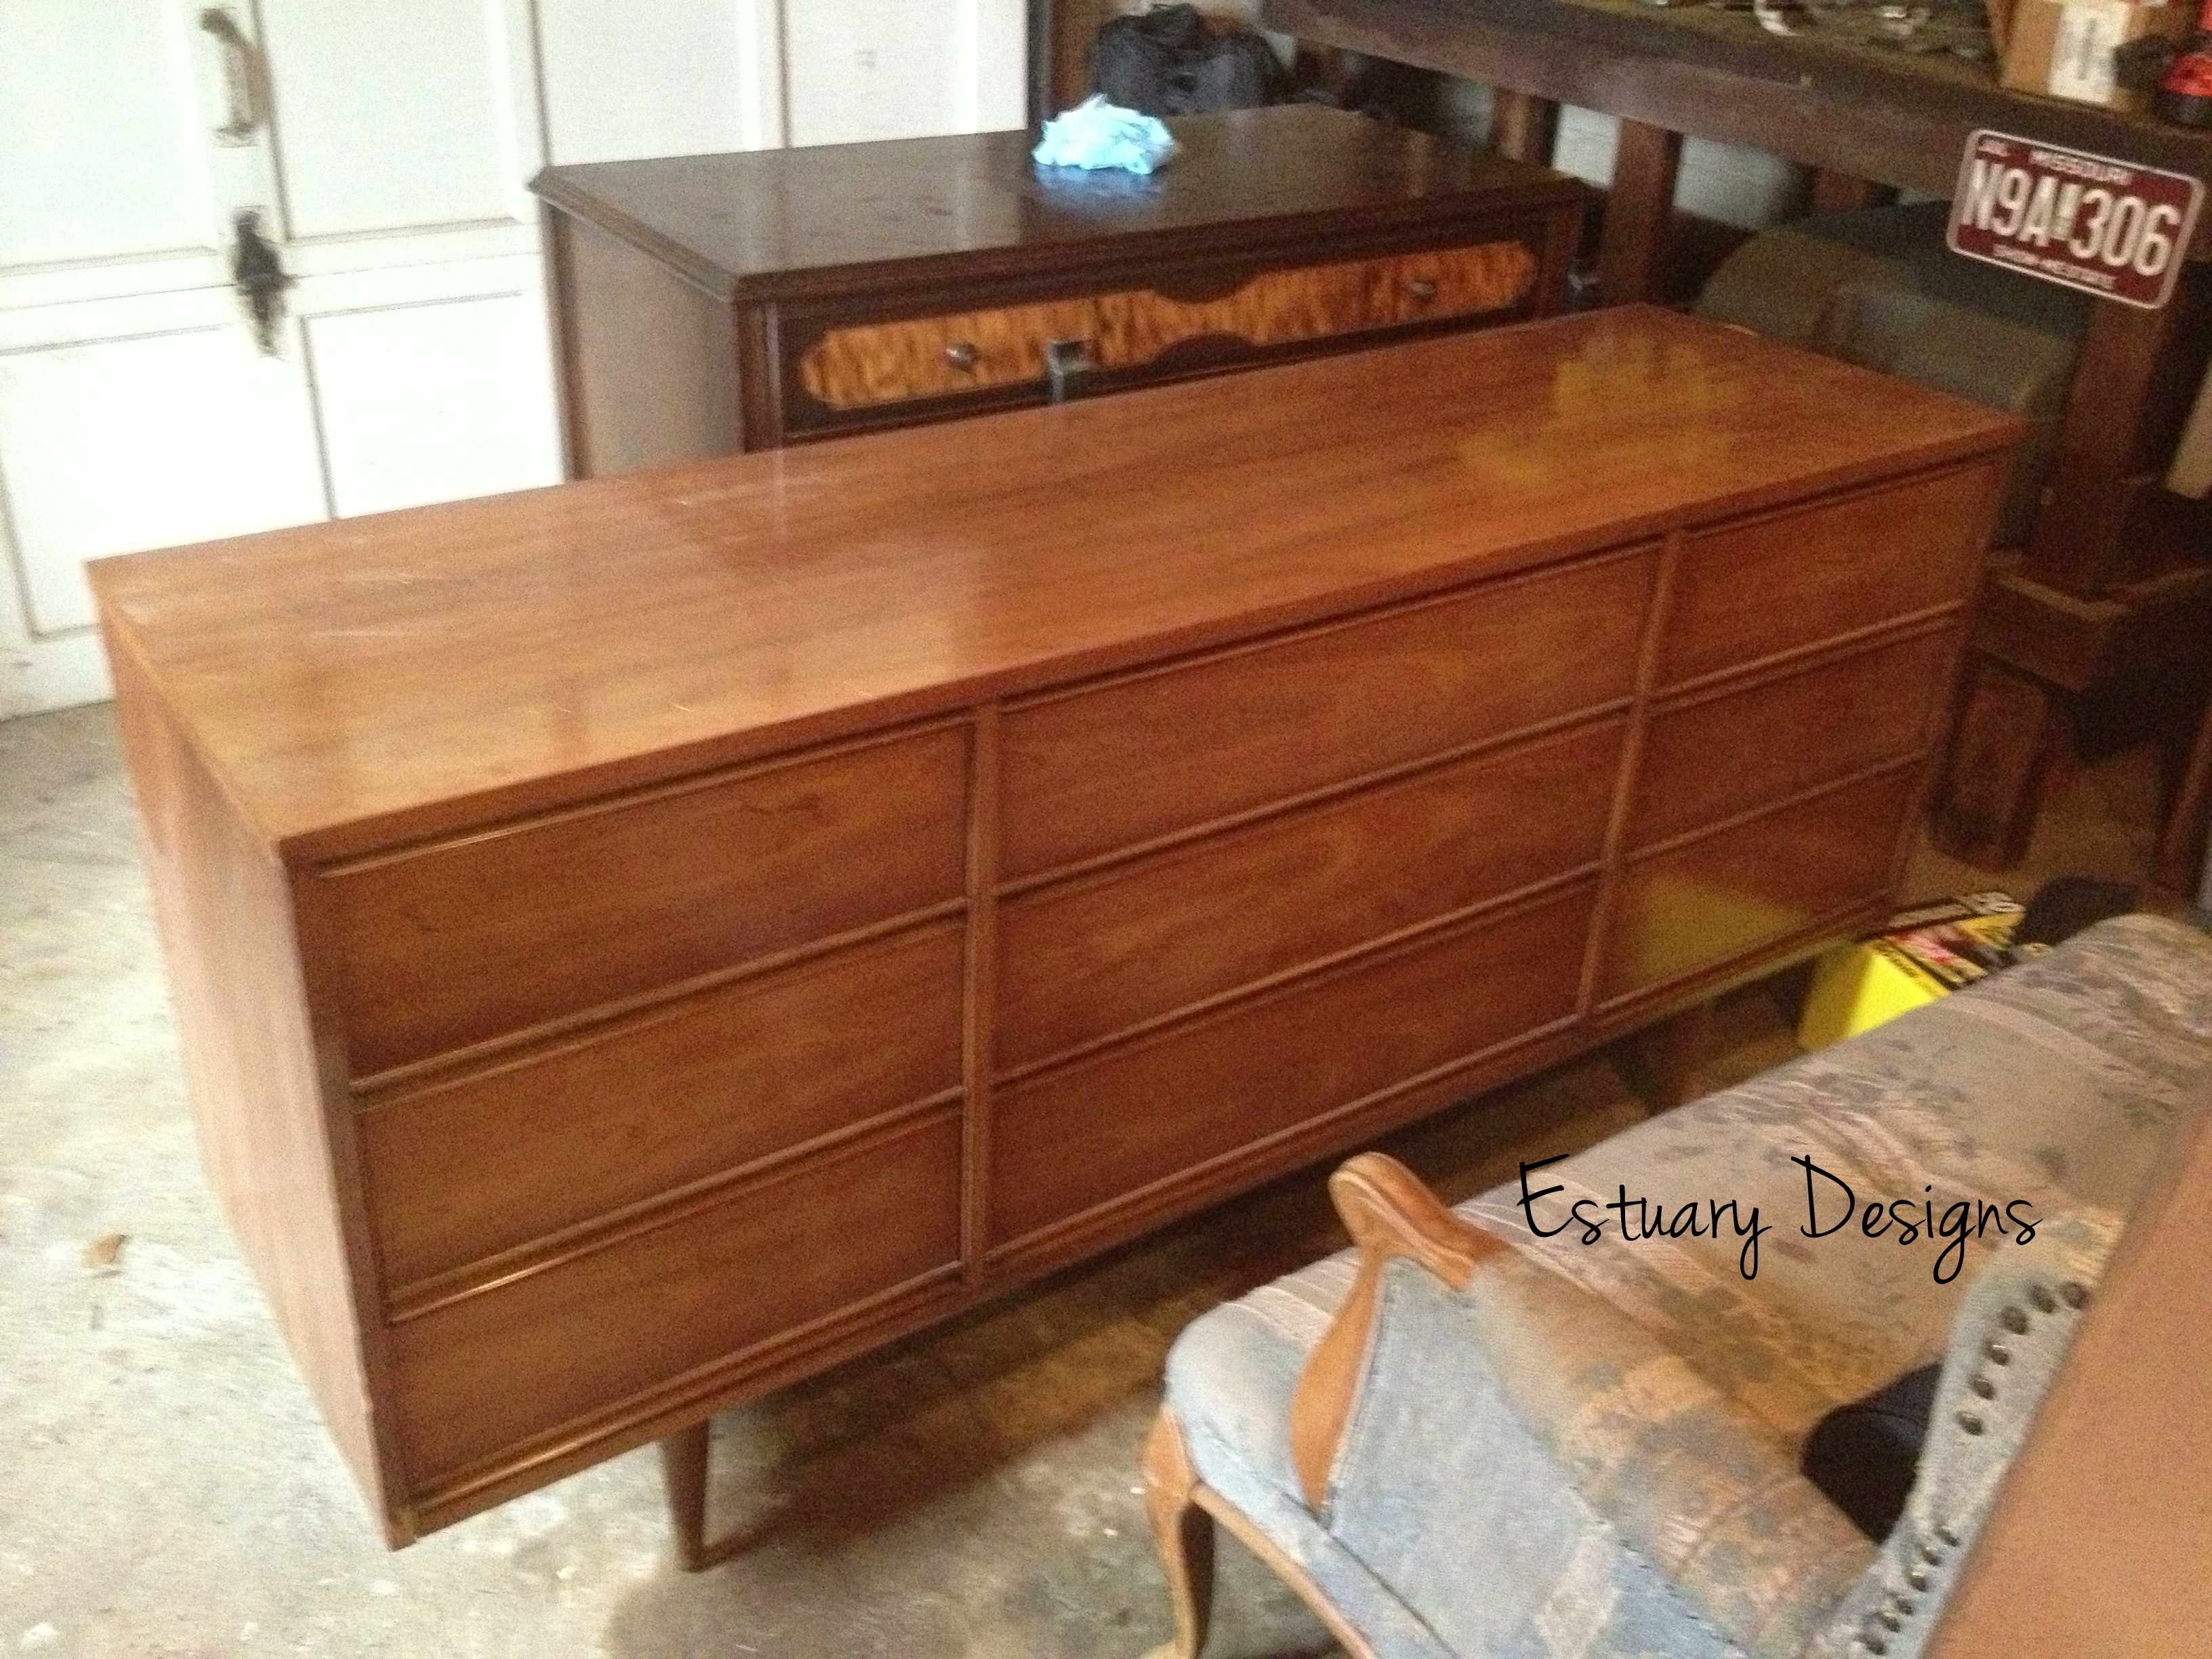 Furniture Mid Century Dresser Beside Desk And Study With Wooden